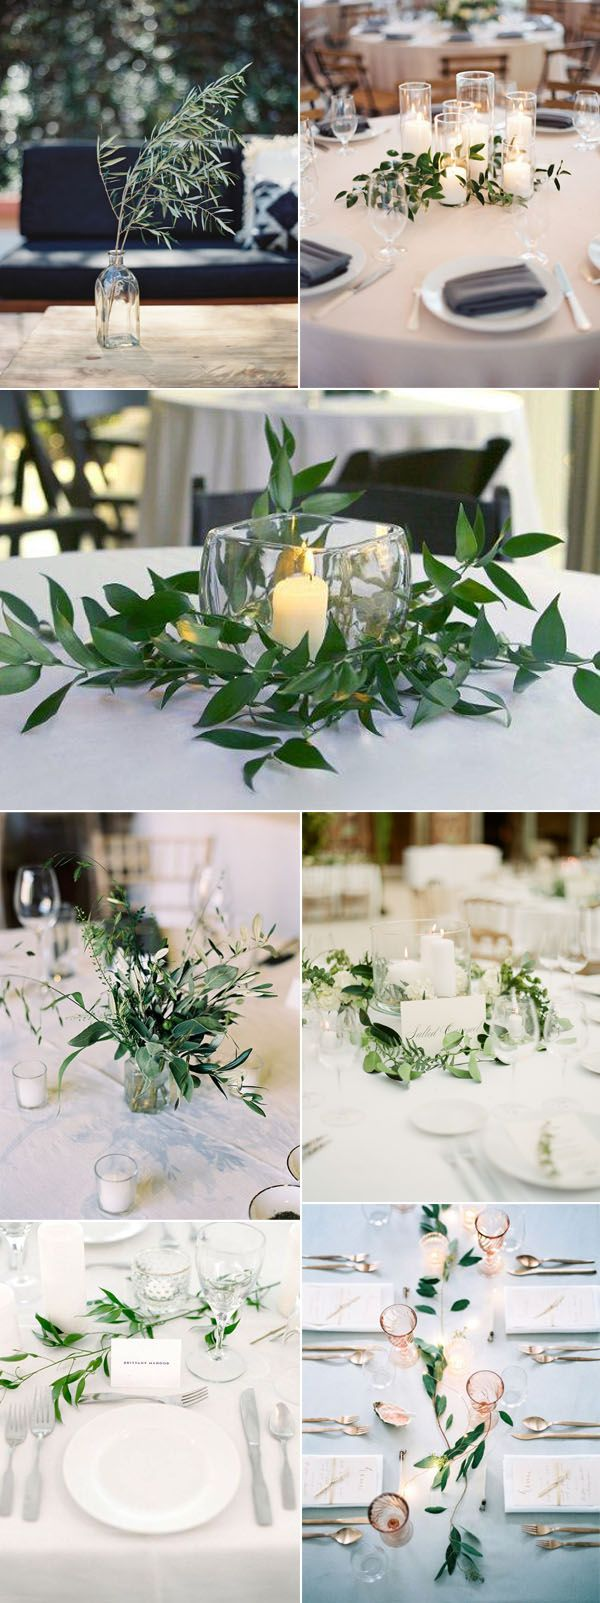 25 Best Ideas About Reception Table Decorations On Pinterest Wedding Recep